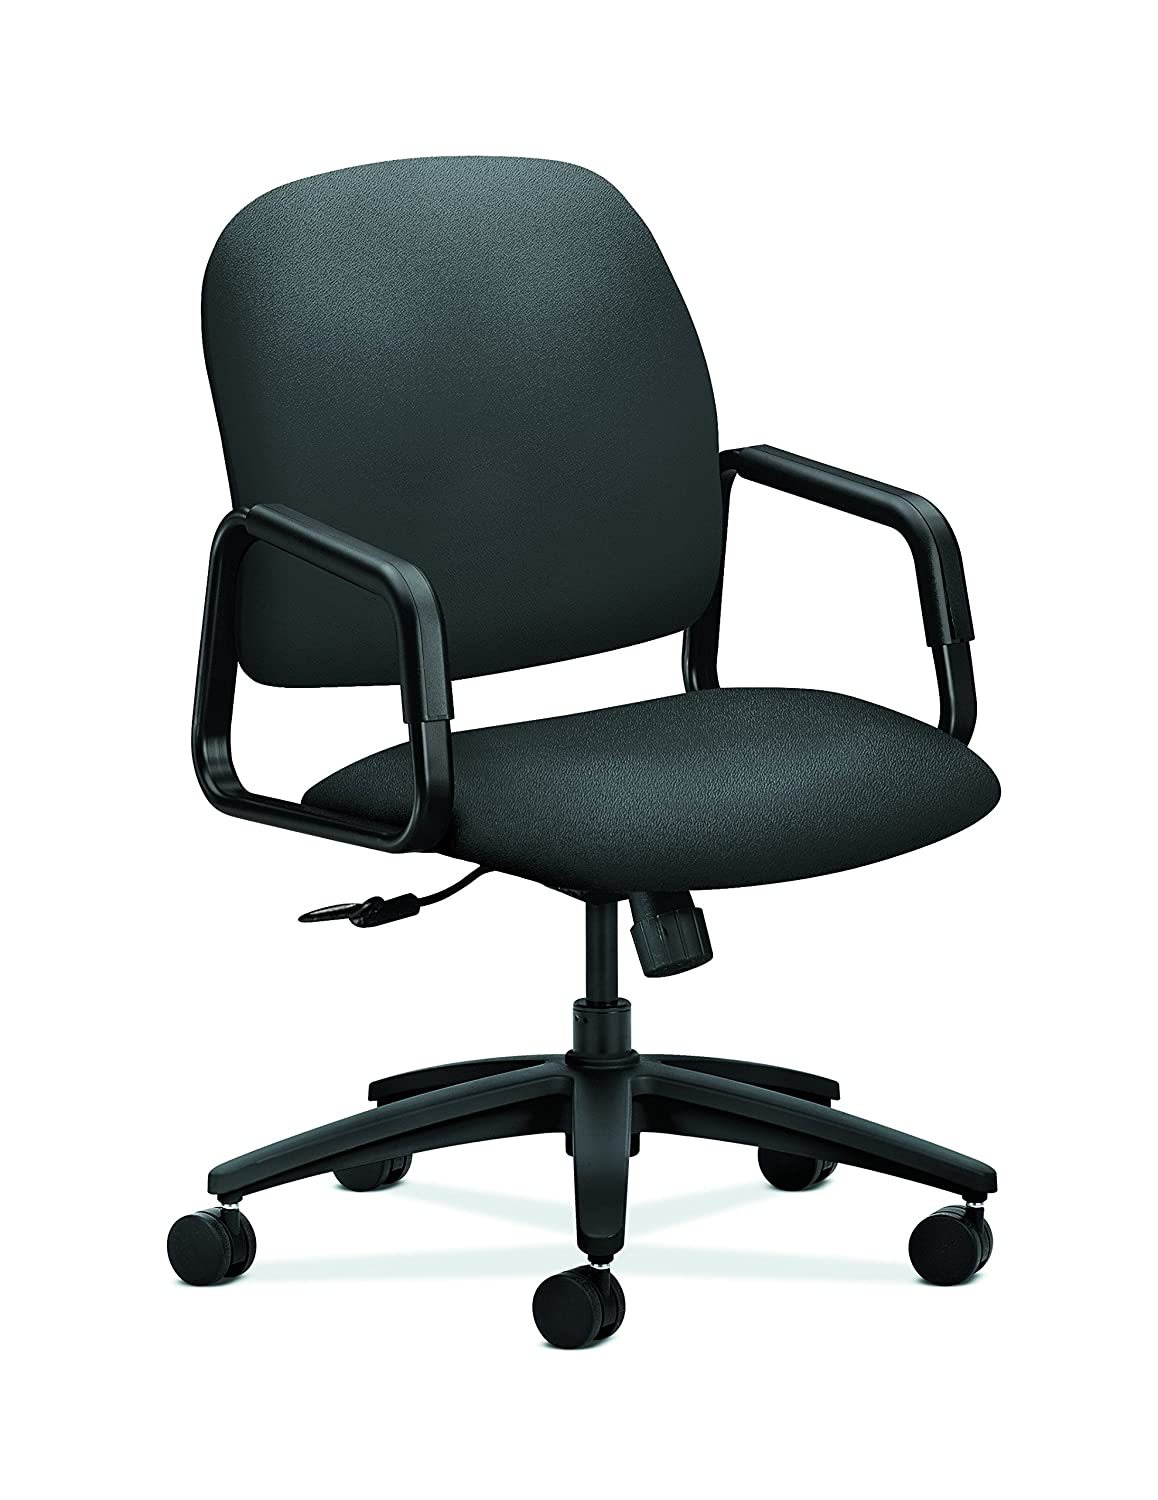 HON Fixed Arms Center-Tilt Solutions Seating High-Back Chair, Iron Ore